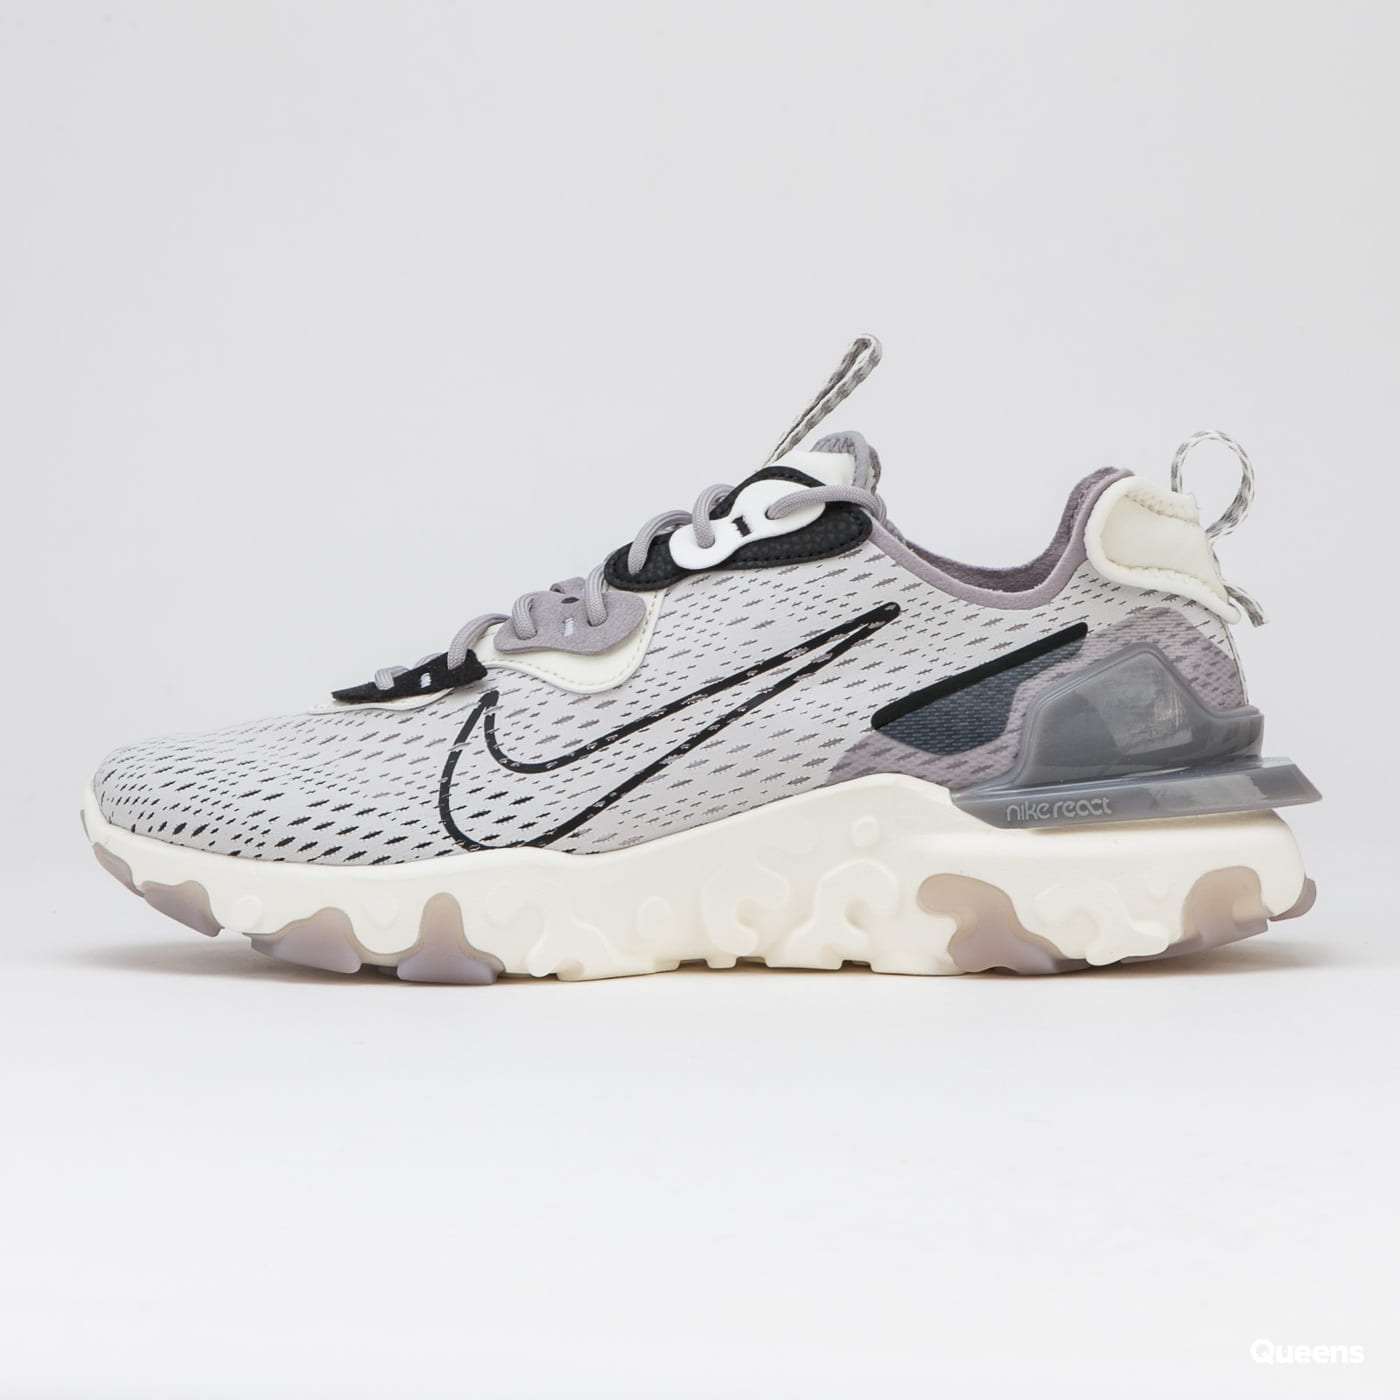 Nike React Vision vast grey / black - sail - white